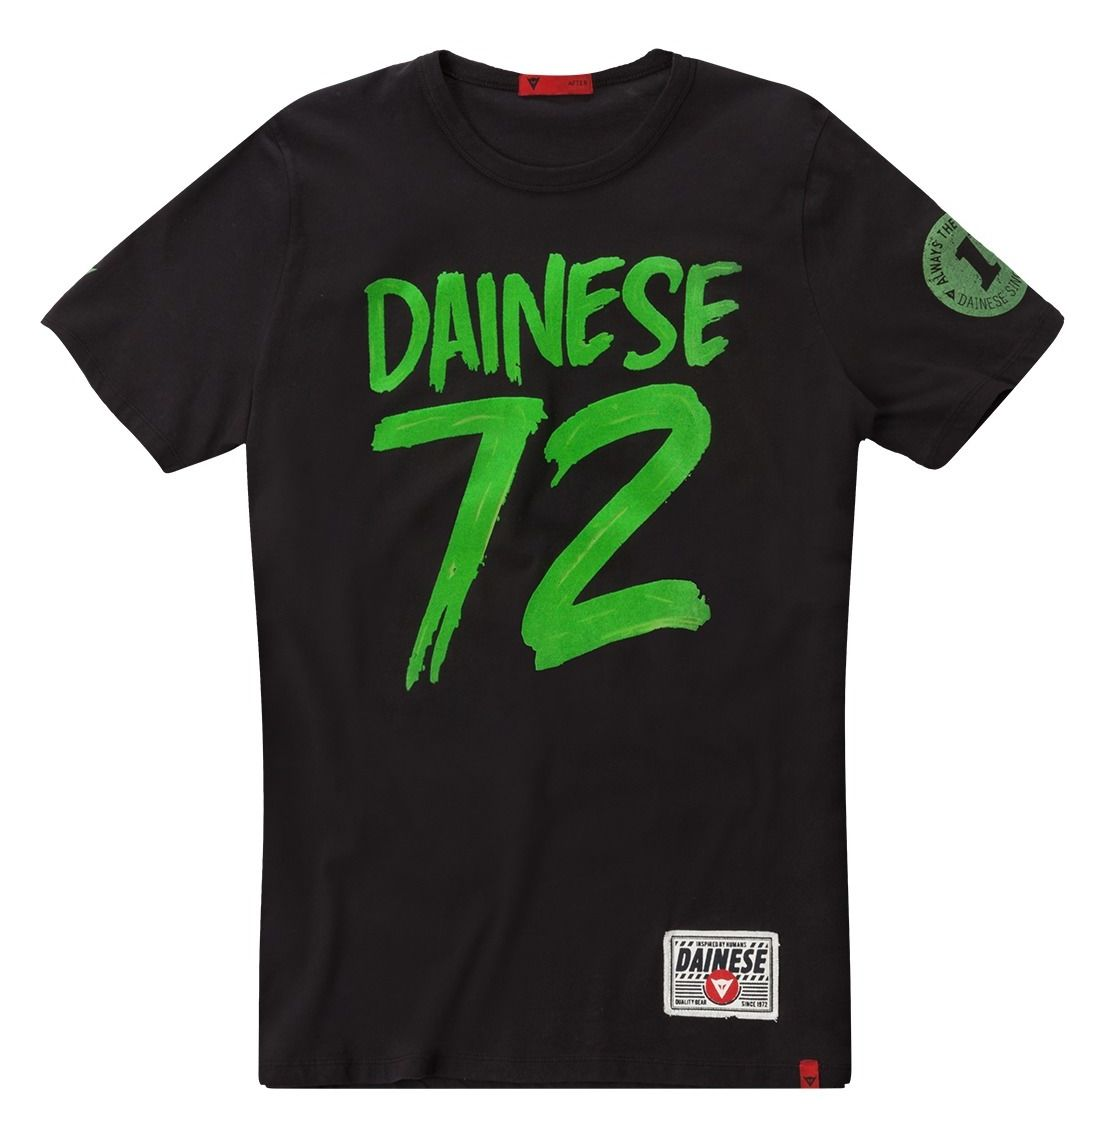 dainese 72 t shirt revzilla. Black Bedroom Furniture Sets. Home Design Ideas